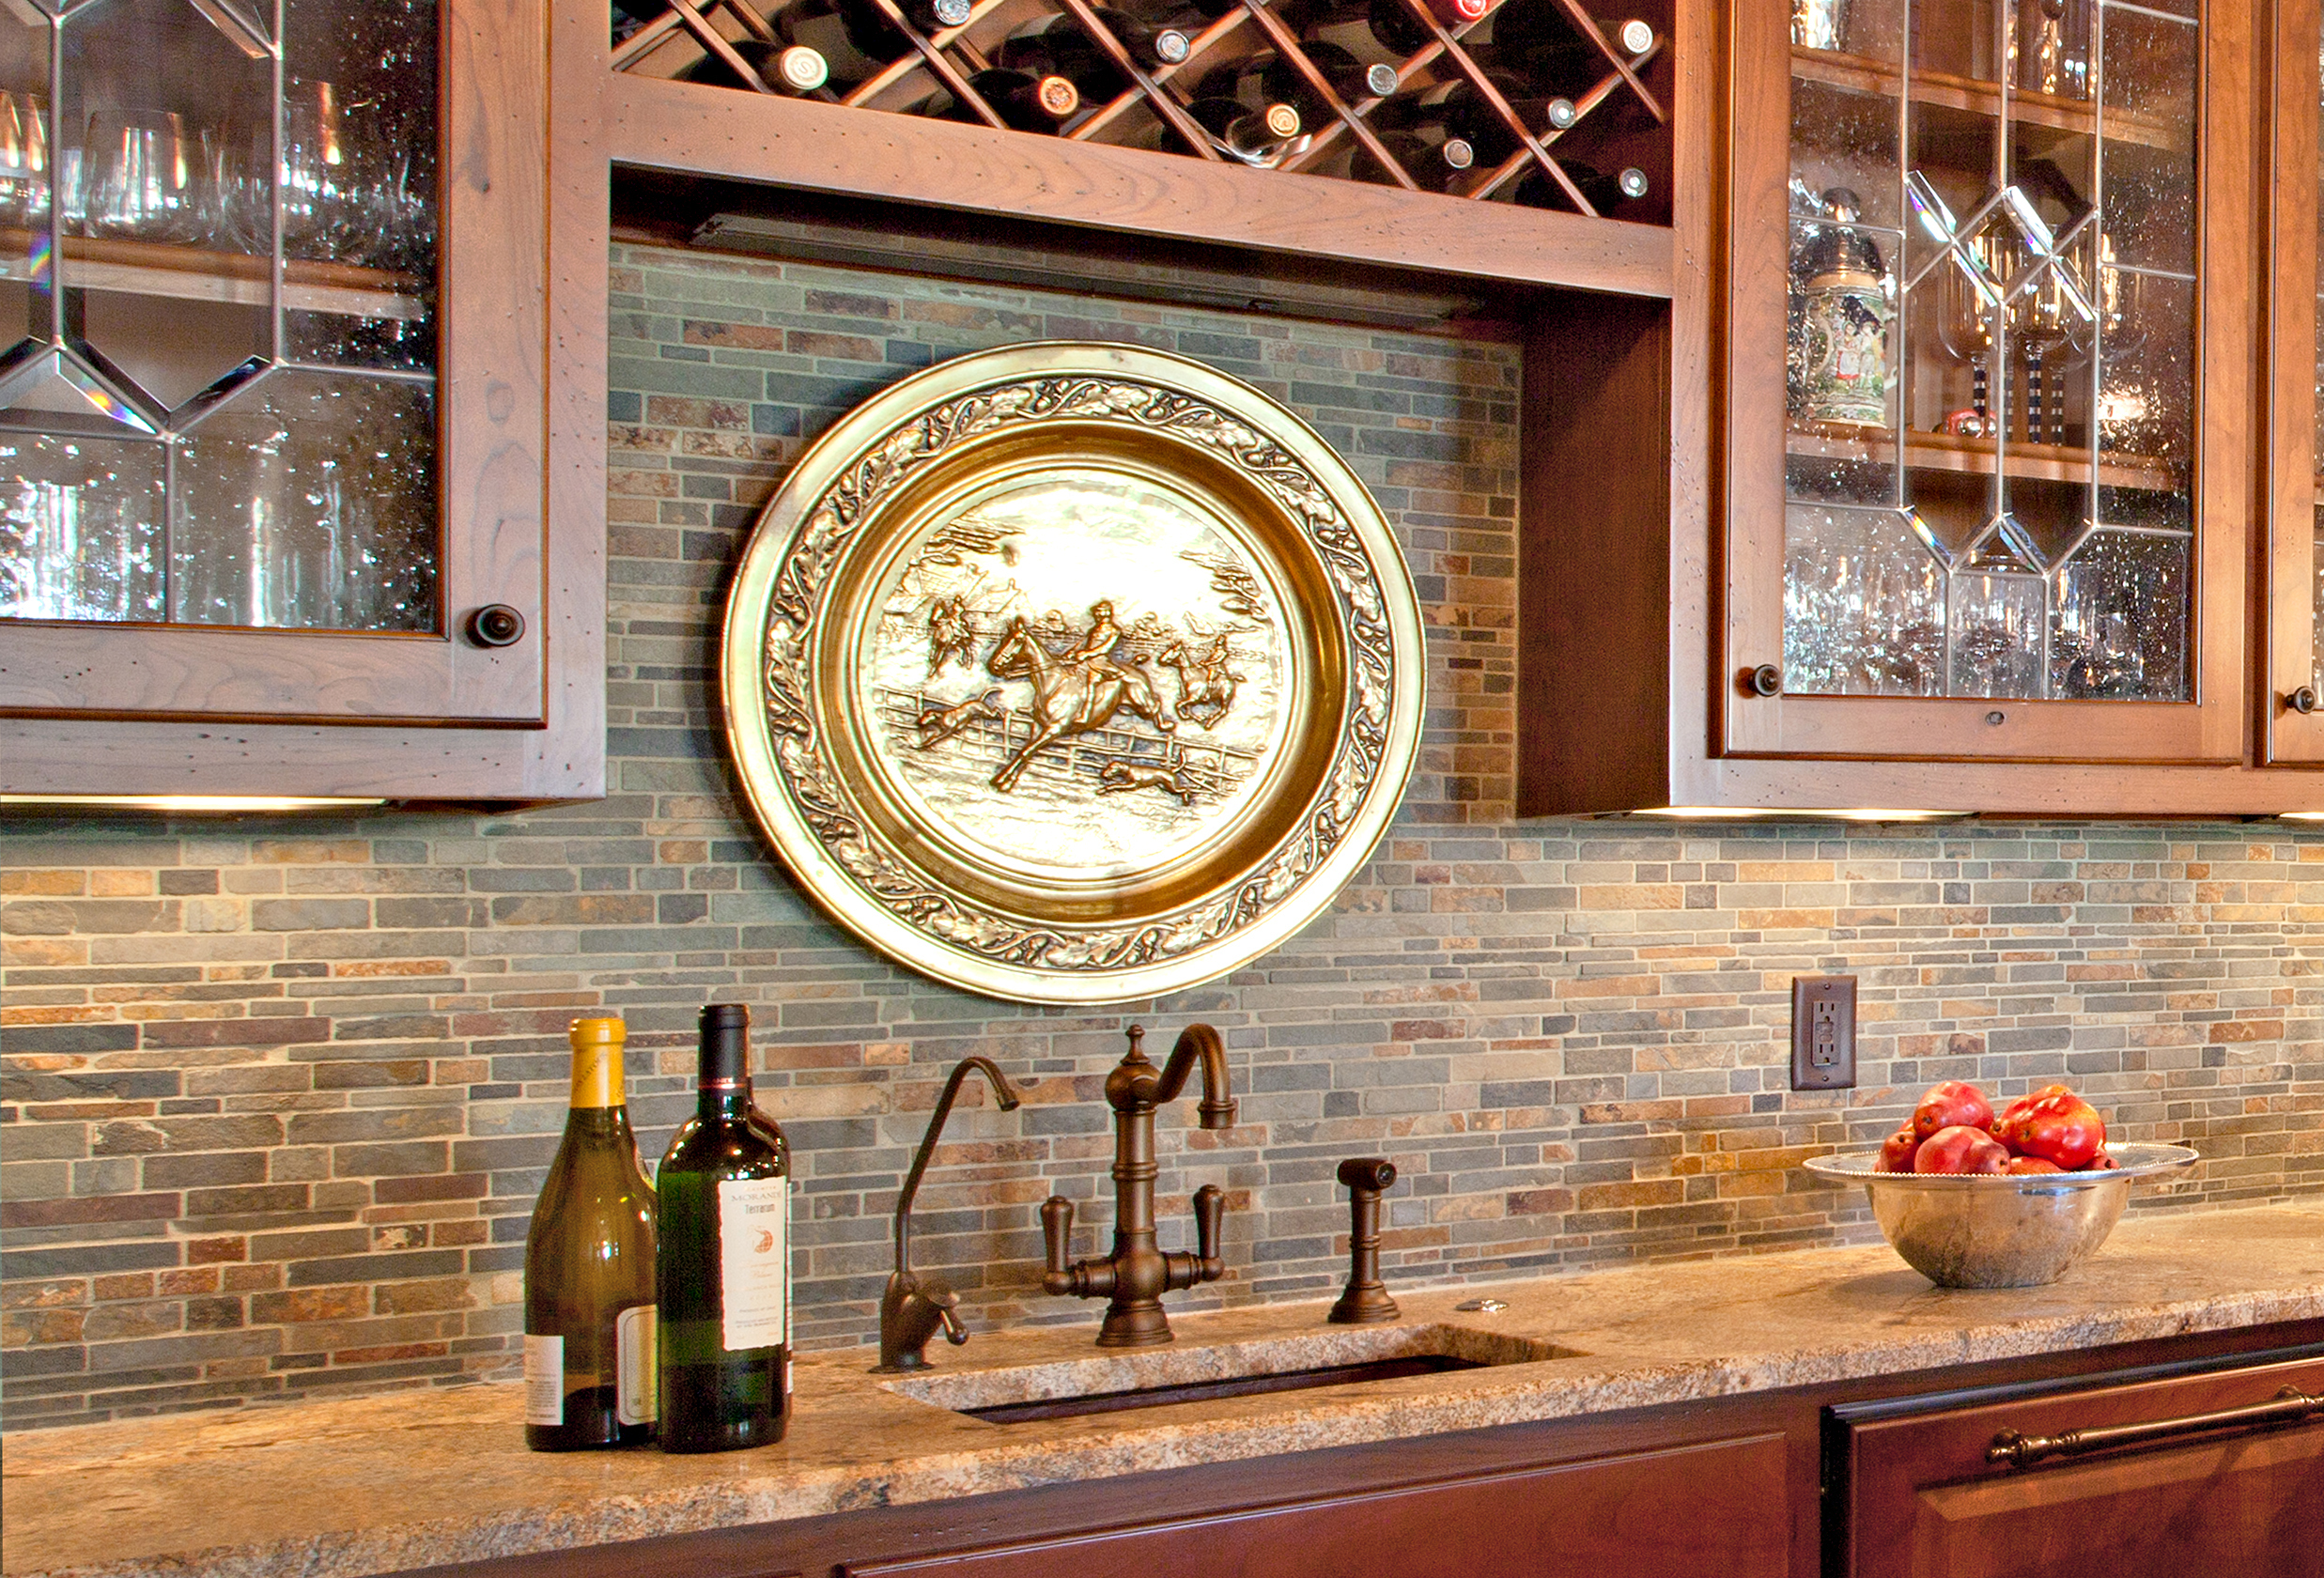 Multicolored slate kitchen backsplash by Elizabeth Swartz Interiors